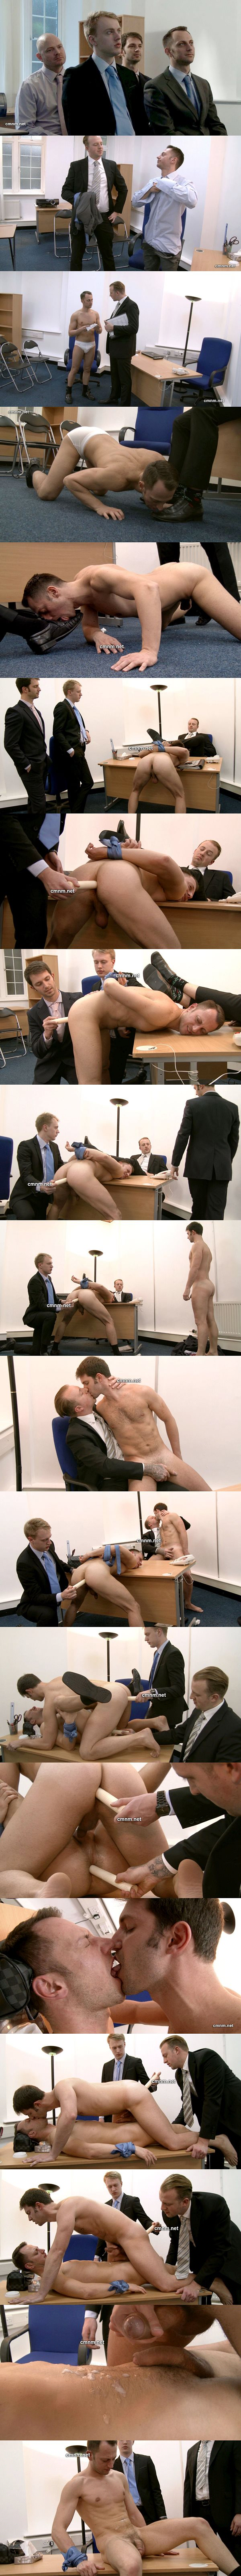 Straight businessmen Joe and Kieran humiliated and vibrator fucked in Office Discipline at Cmnm 02